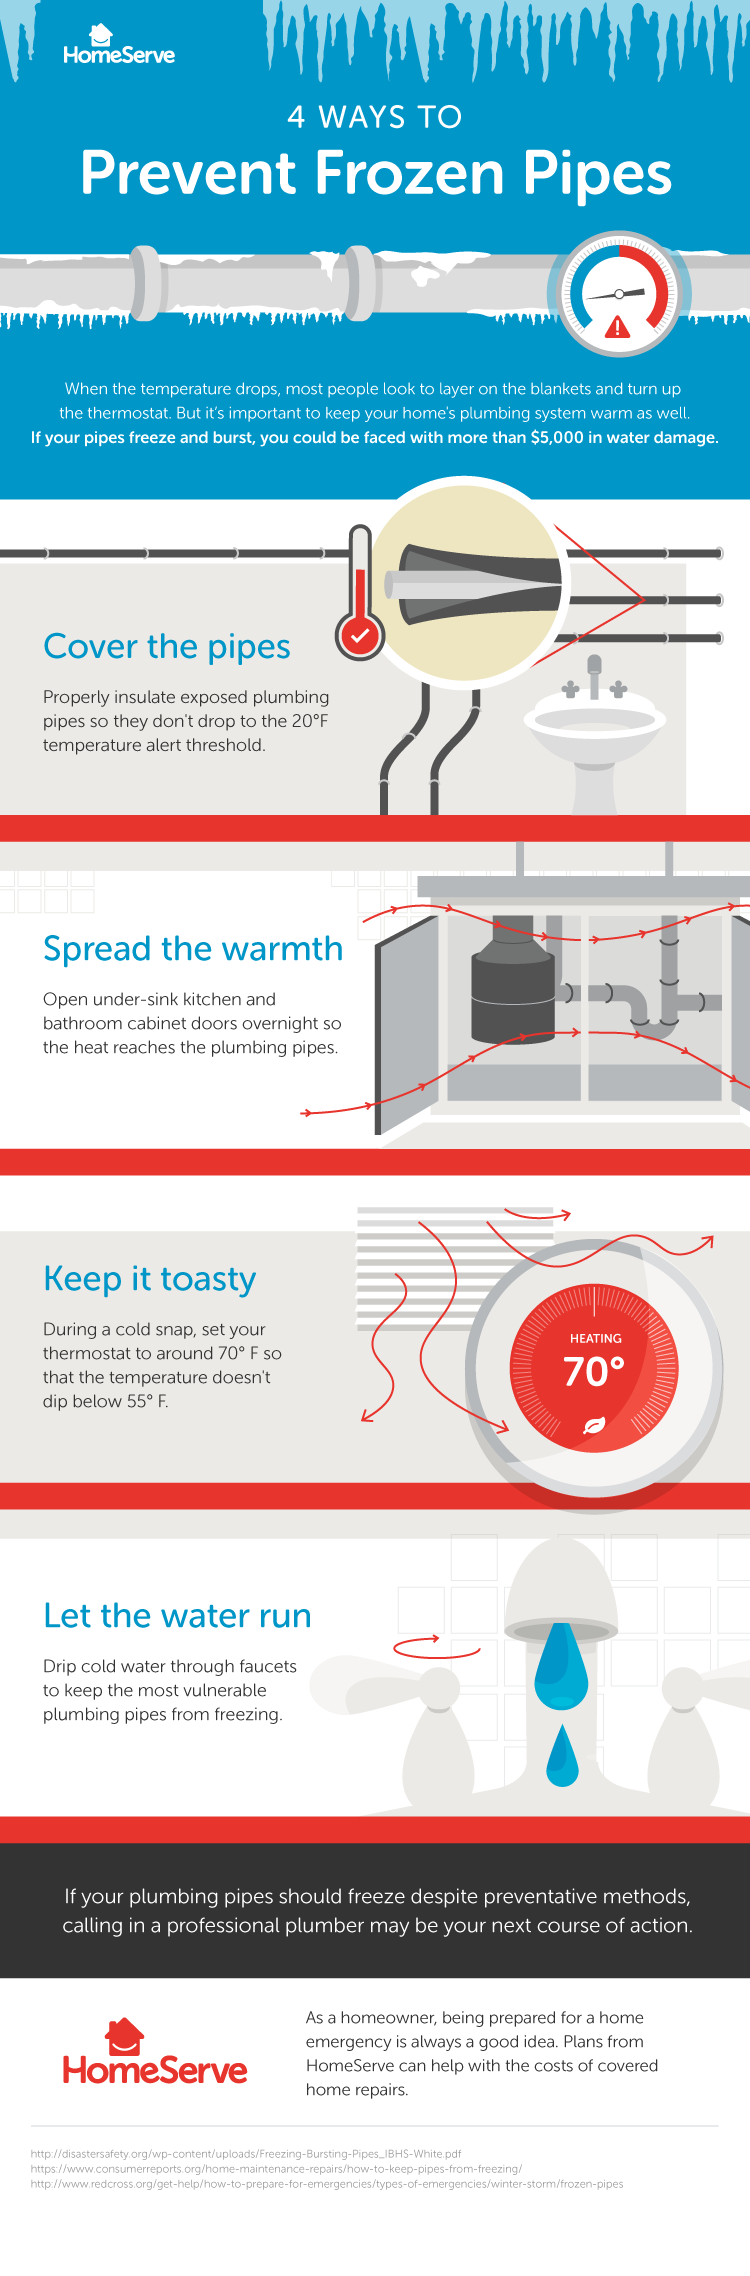 4 Ways to Prevent Frozen Pipes